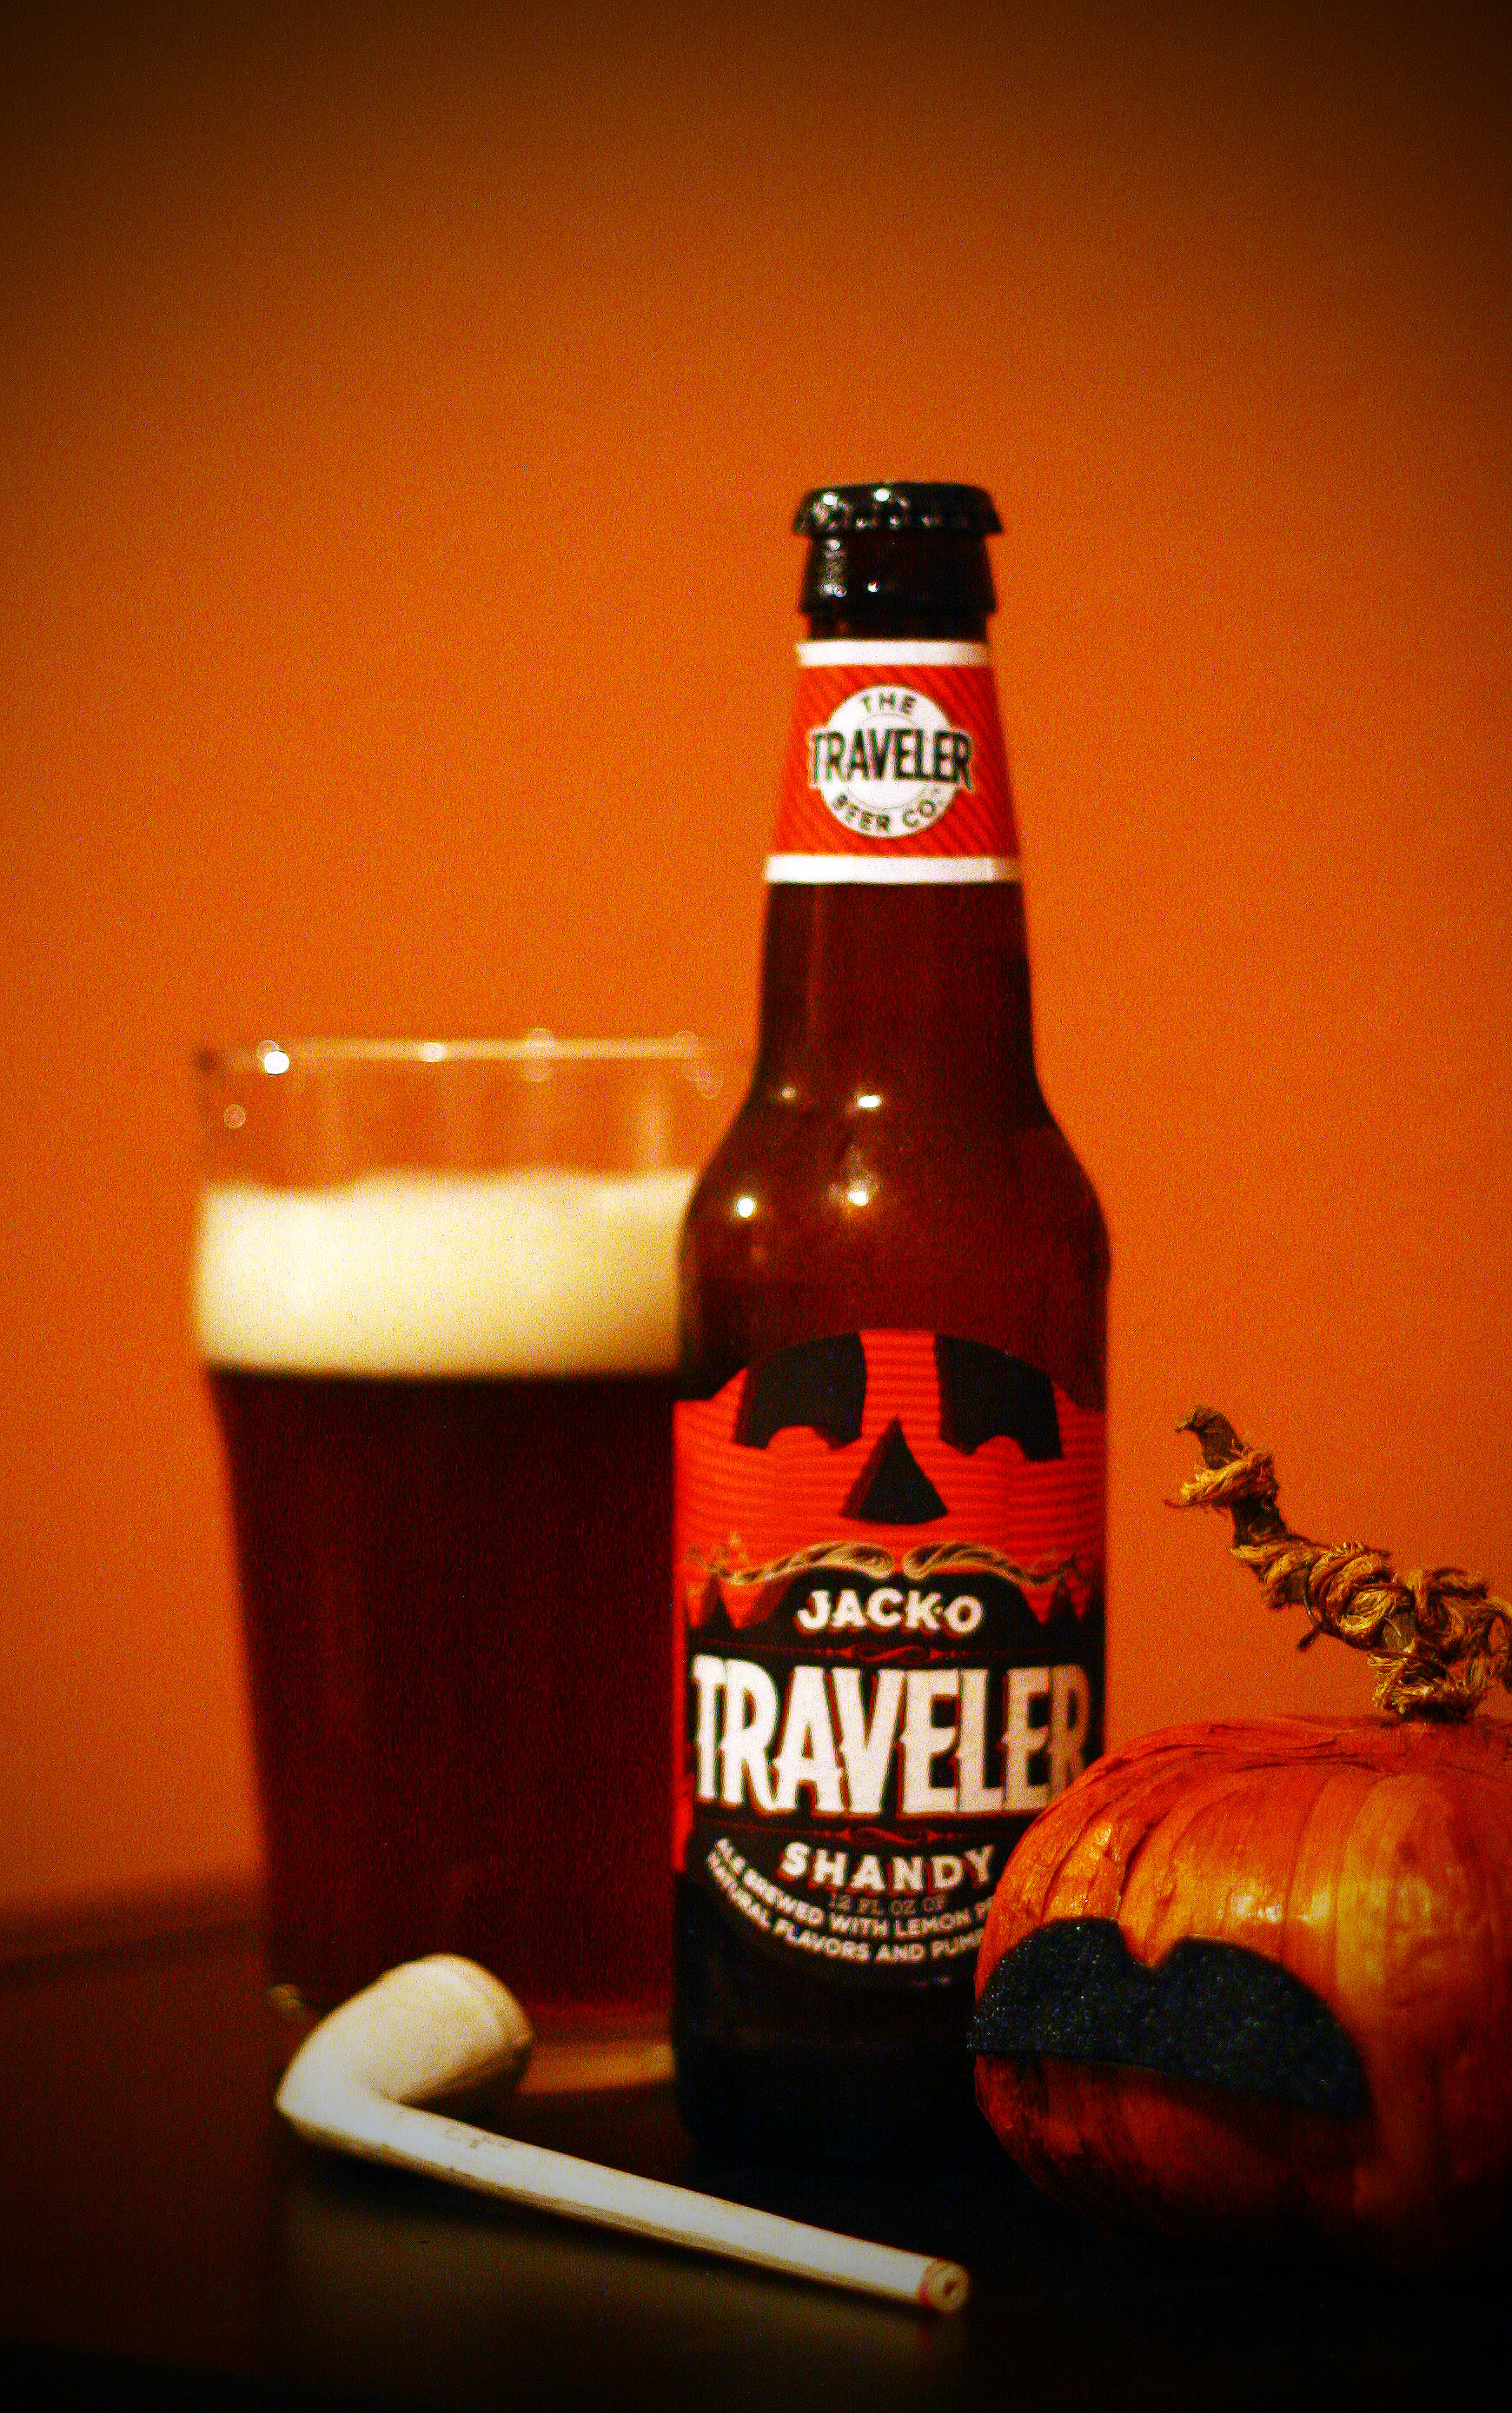 ... Shandy – The Traveler Brewing Co.   The Great Pumpkin Beer Review